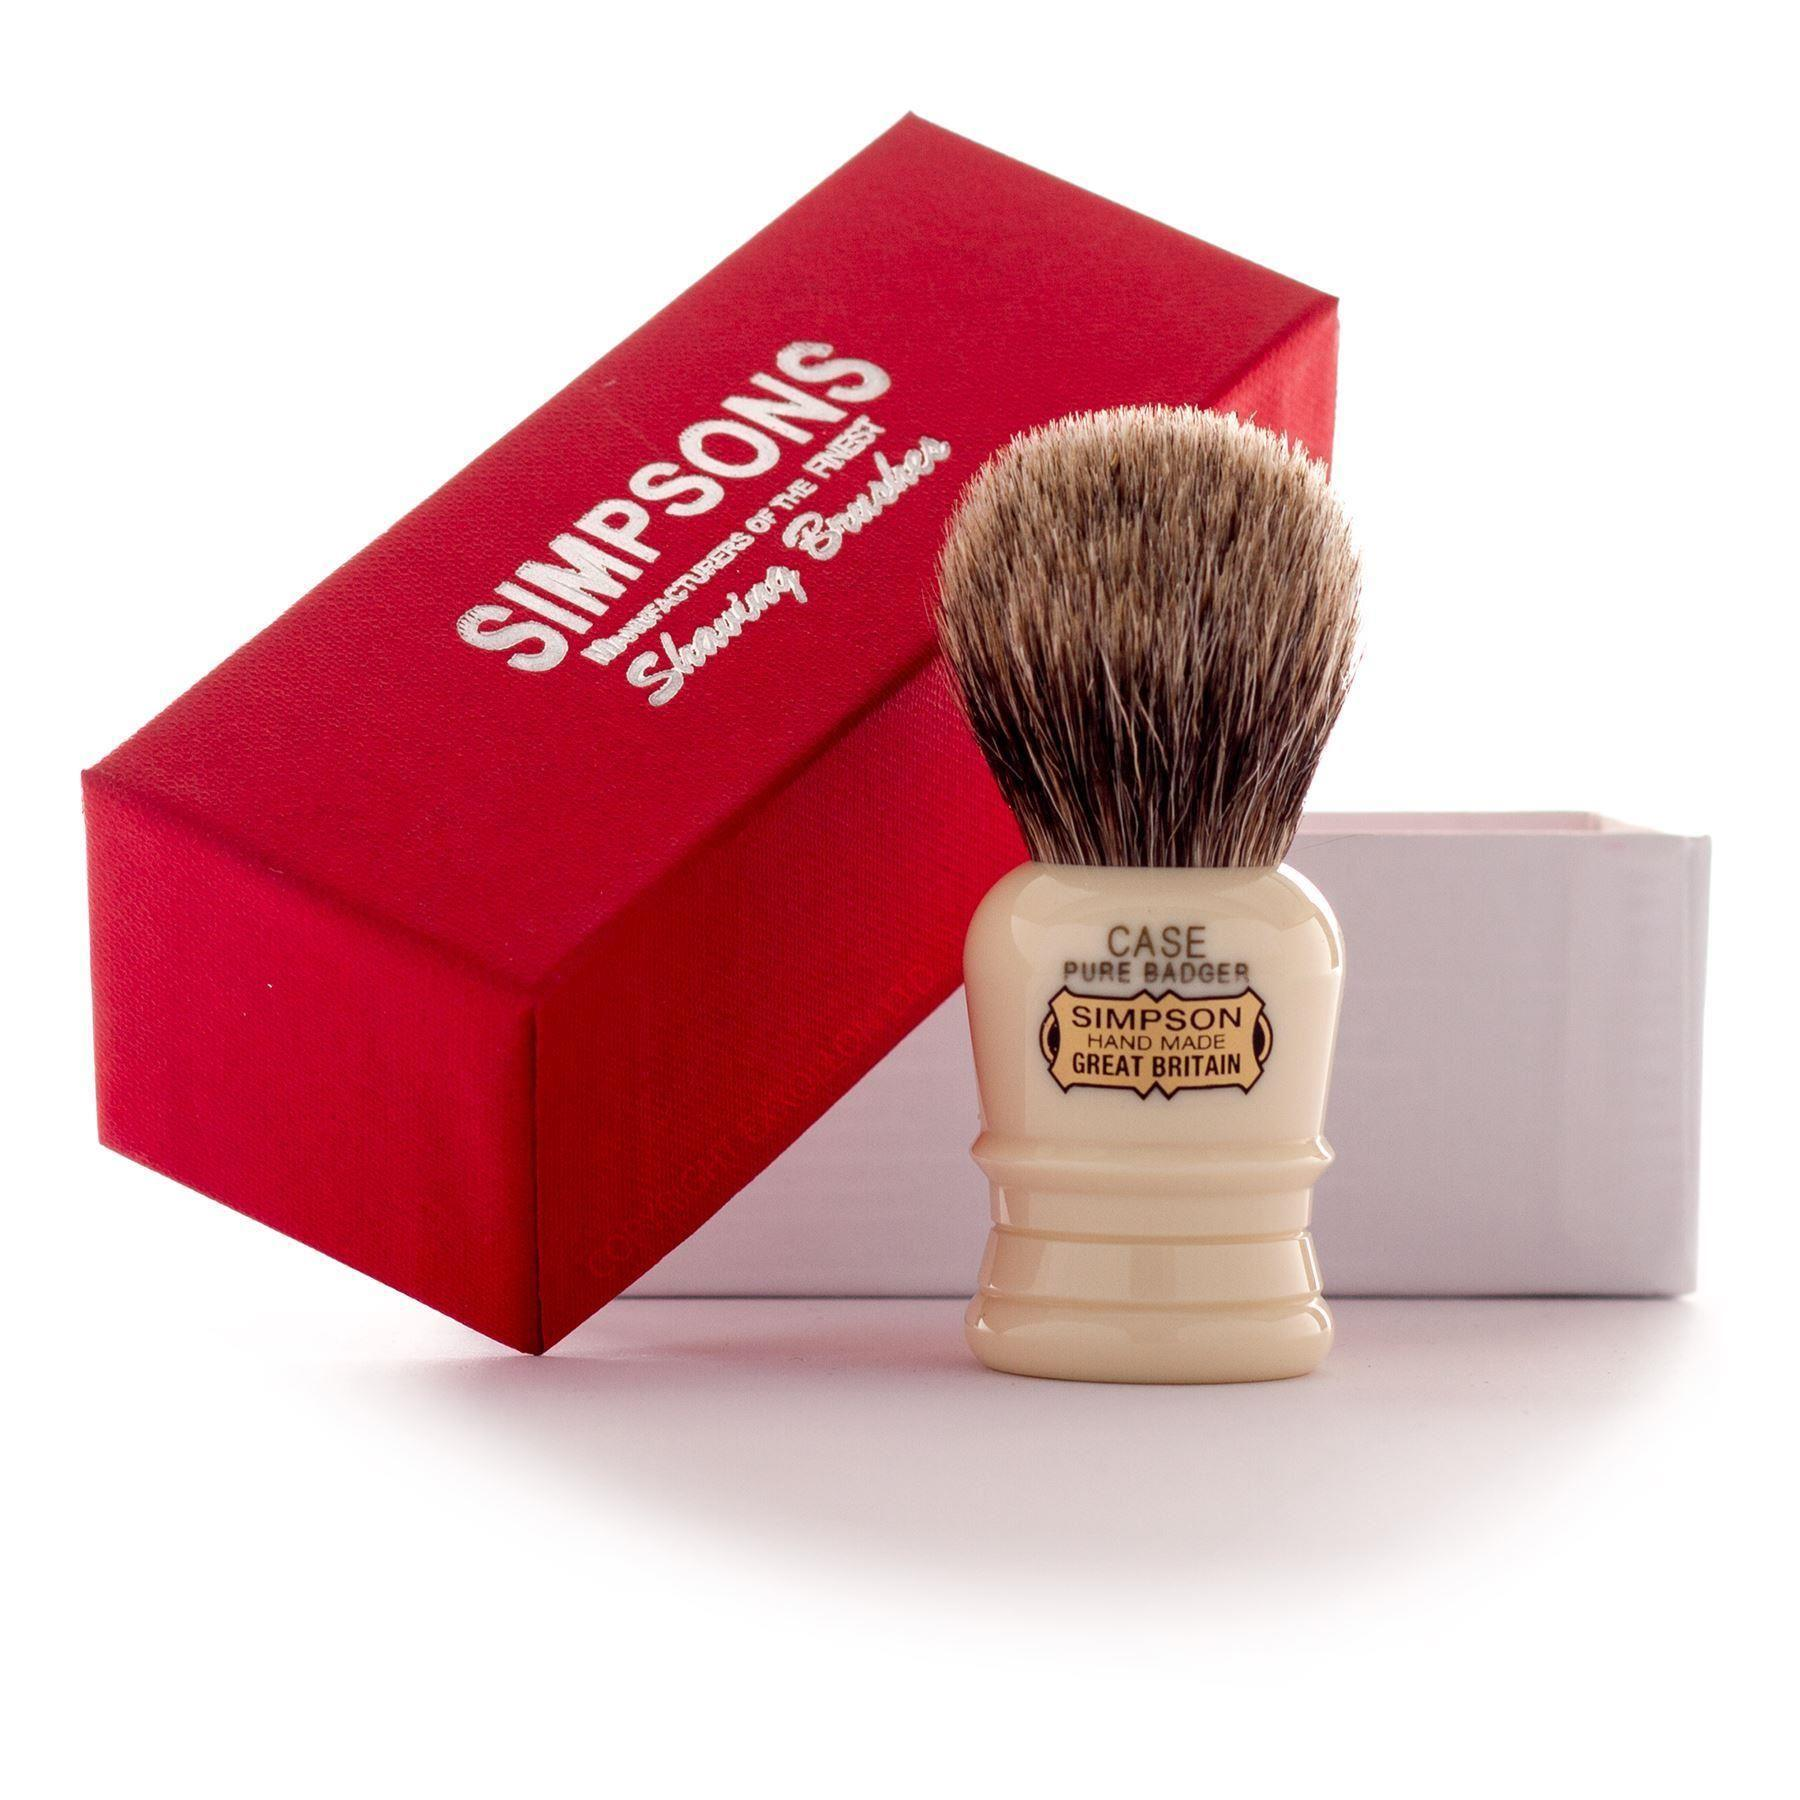 Simpsons 'The Case' Best Badger Hair Shaving Brush